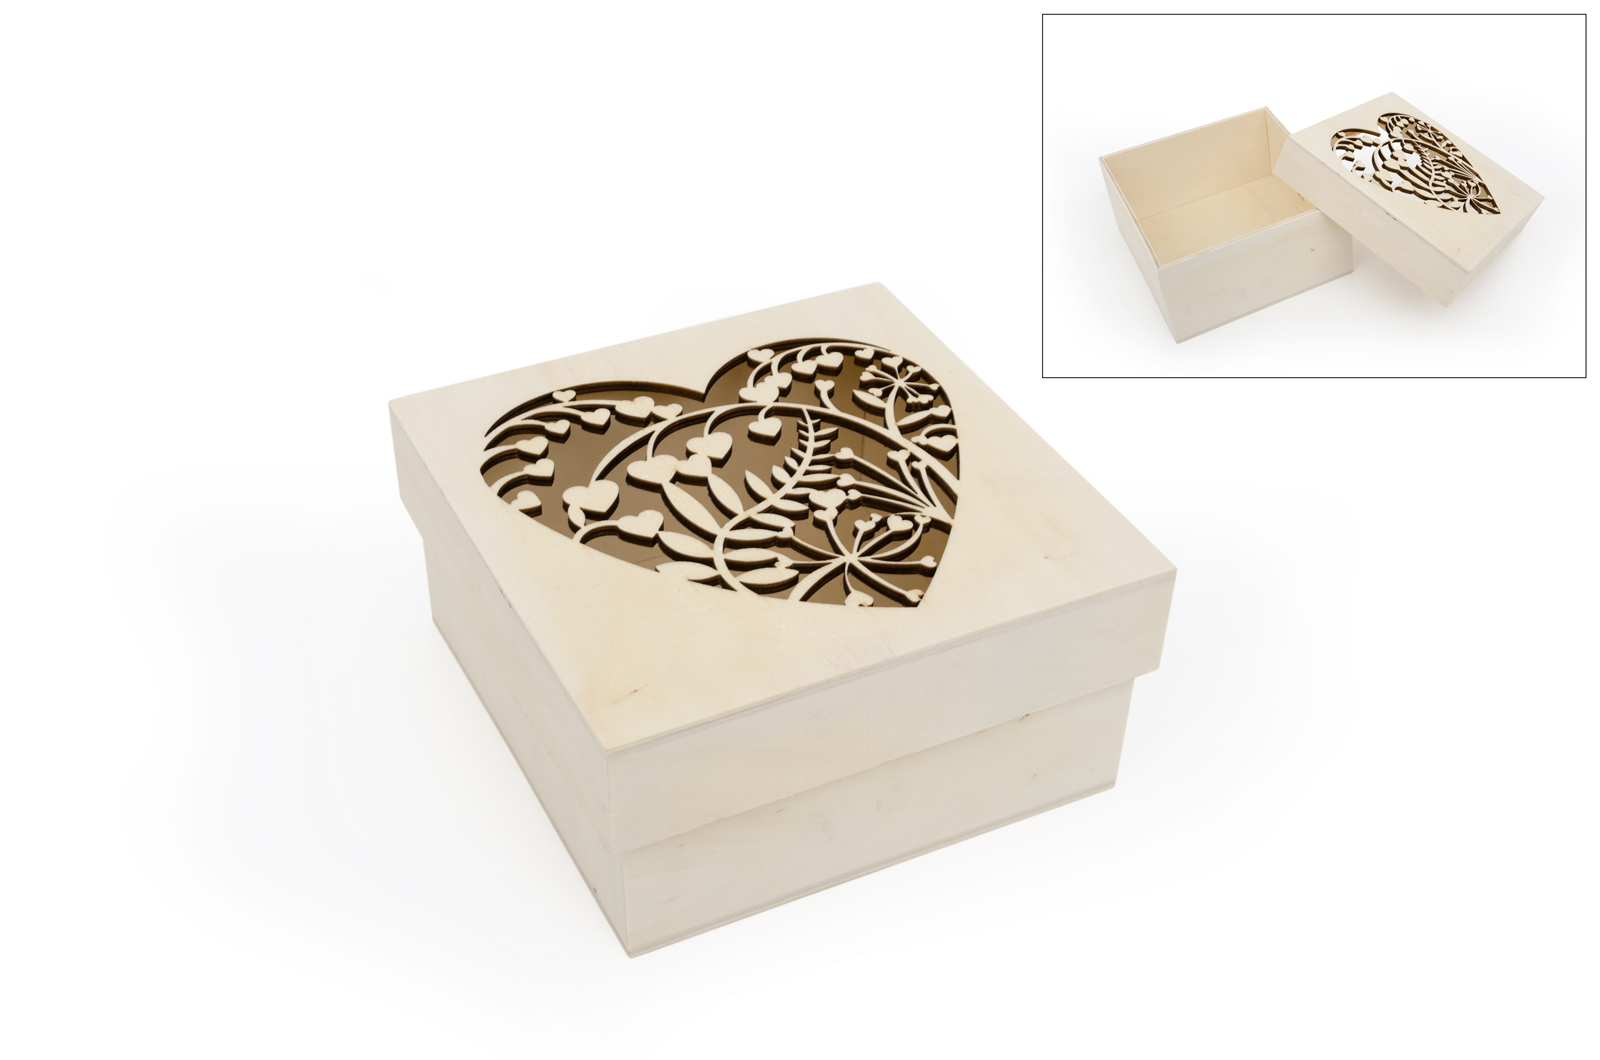 BOX W/LACED HEART 16X16X8CM